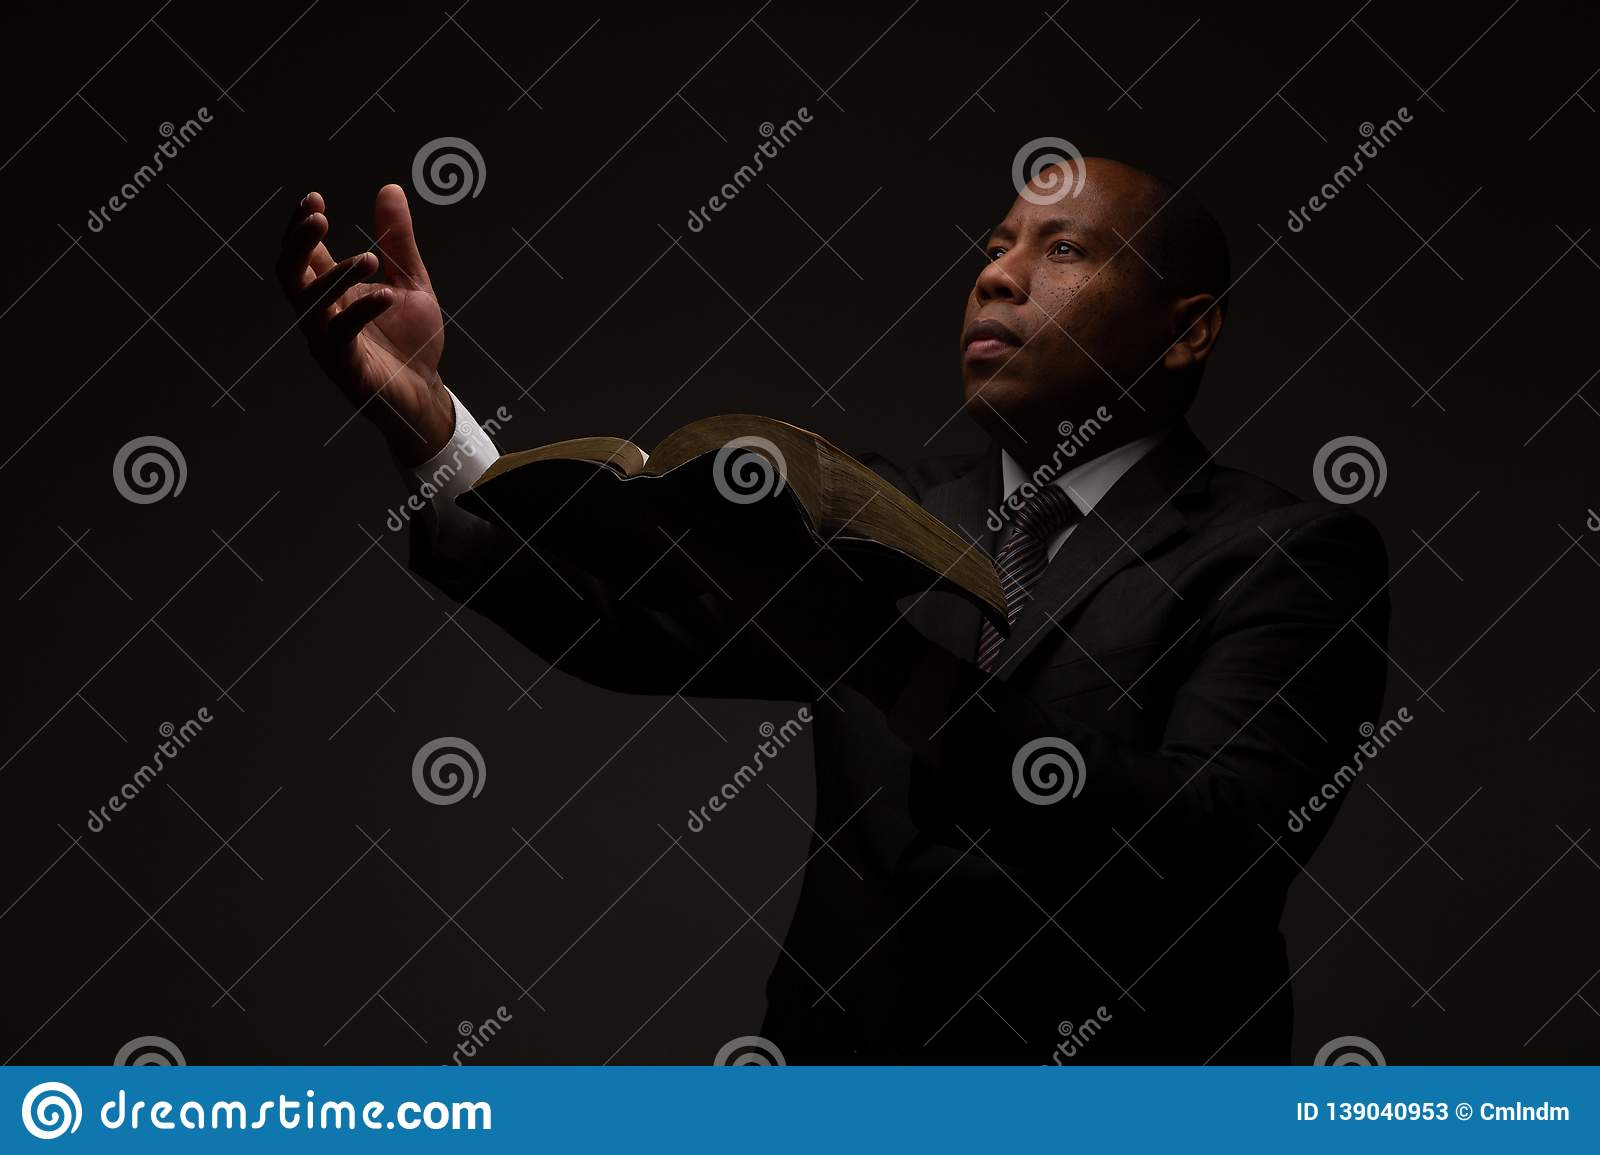 African American Christian Man with the Scriptures in Hand Making an Appeal